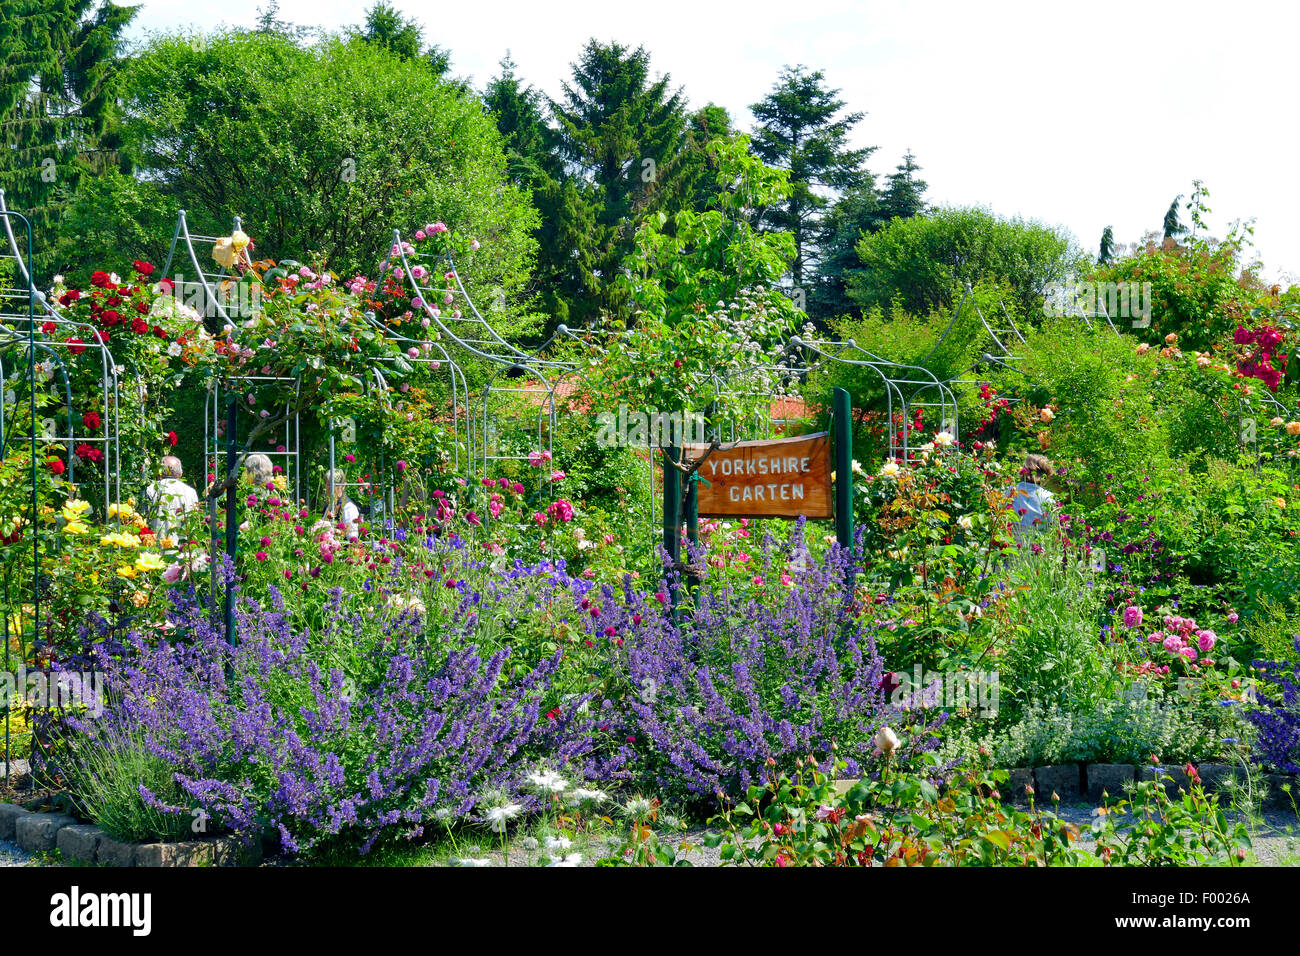 rose garden, arrange as a old english Yorkshire garden  , Germany - Stock Image